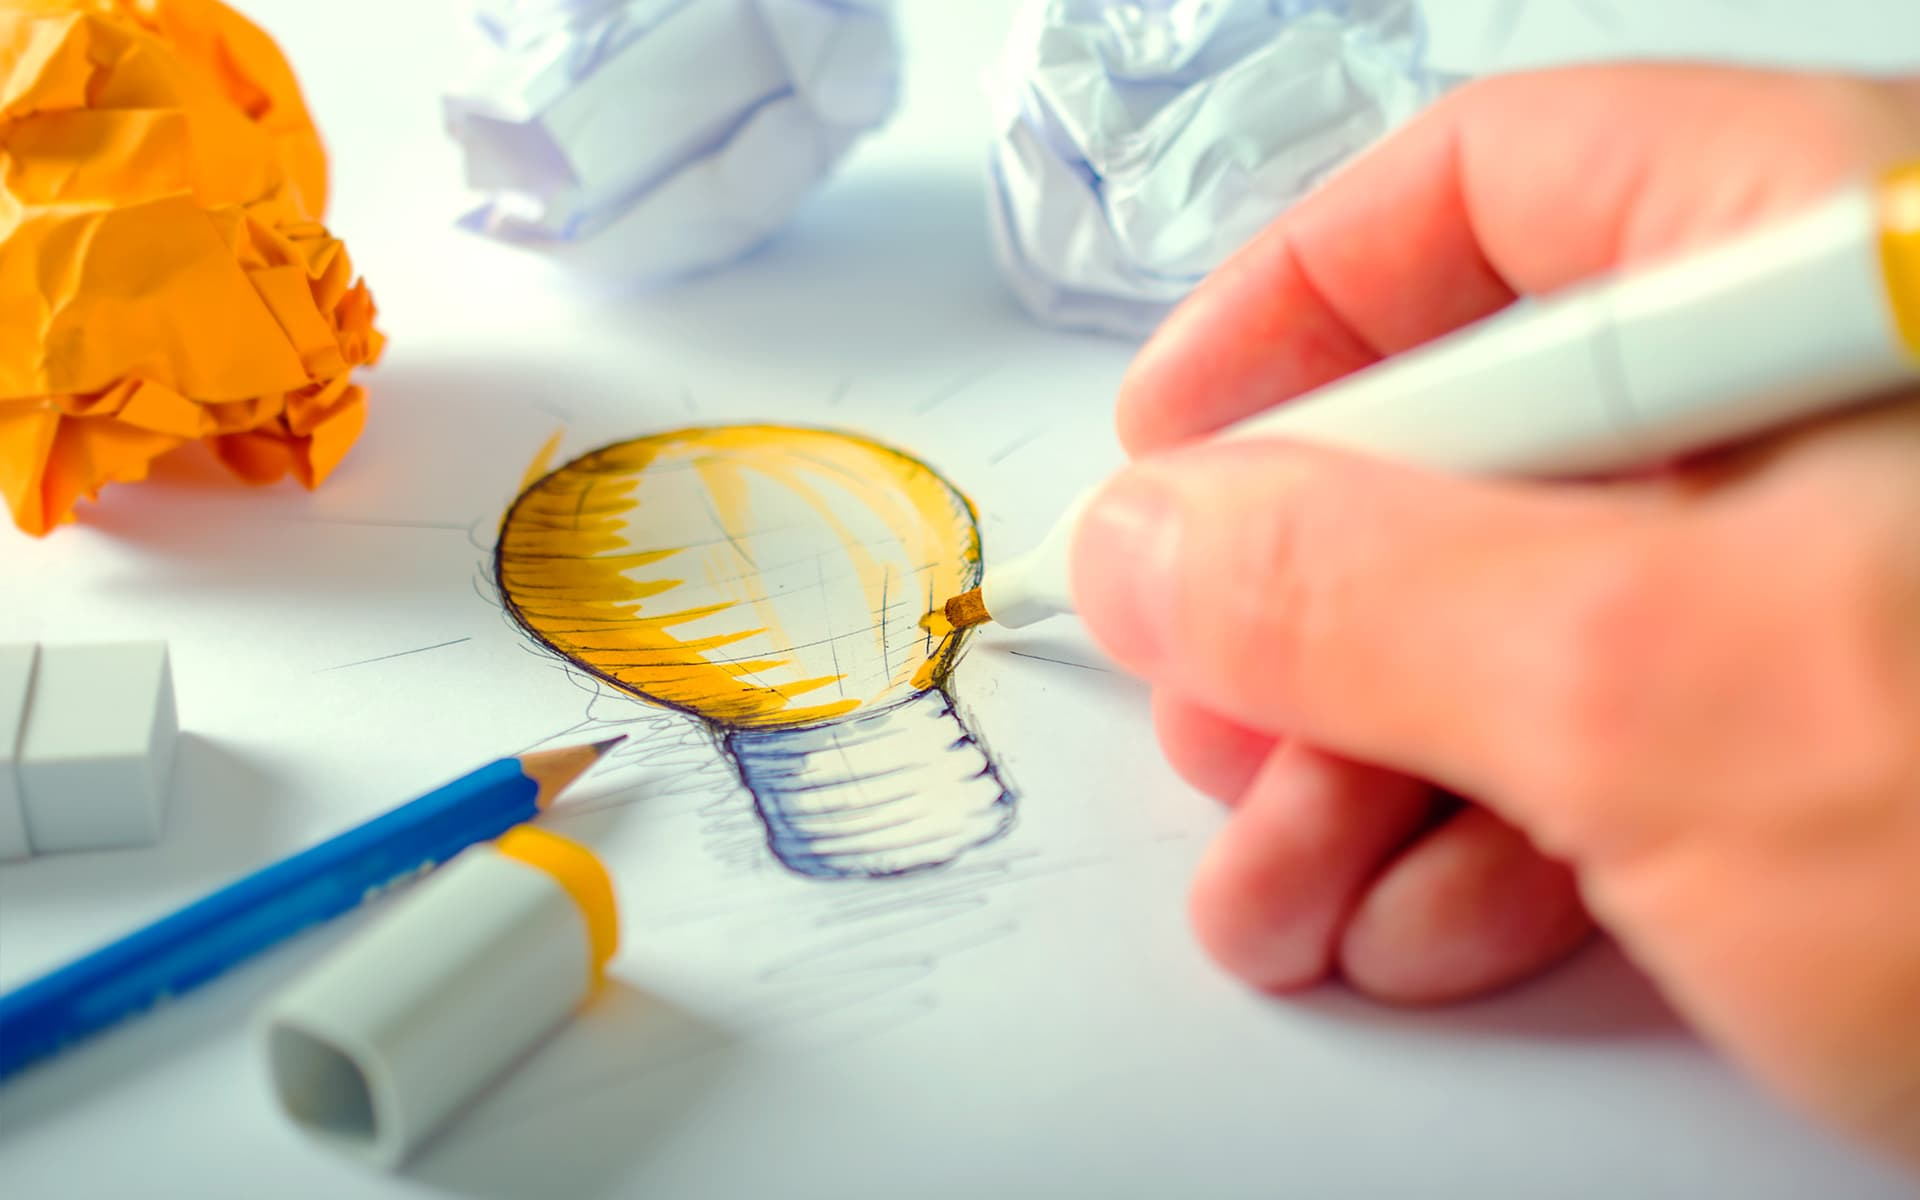 The picture shows a hand drawing a light on a sheet of paper symbolizing a new innovation